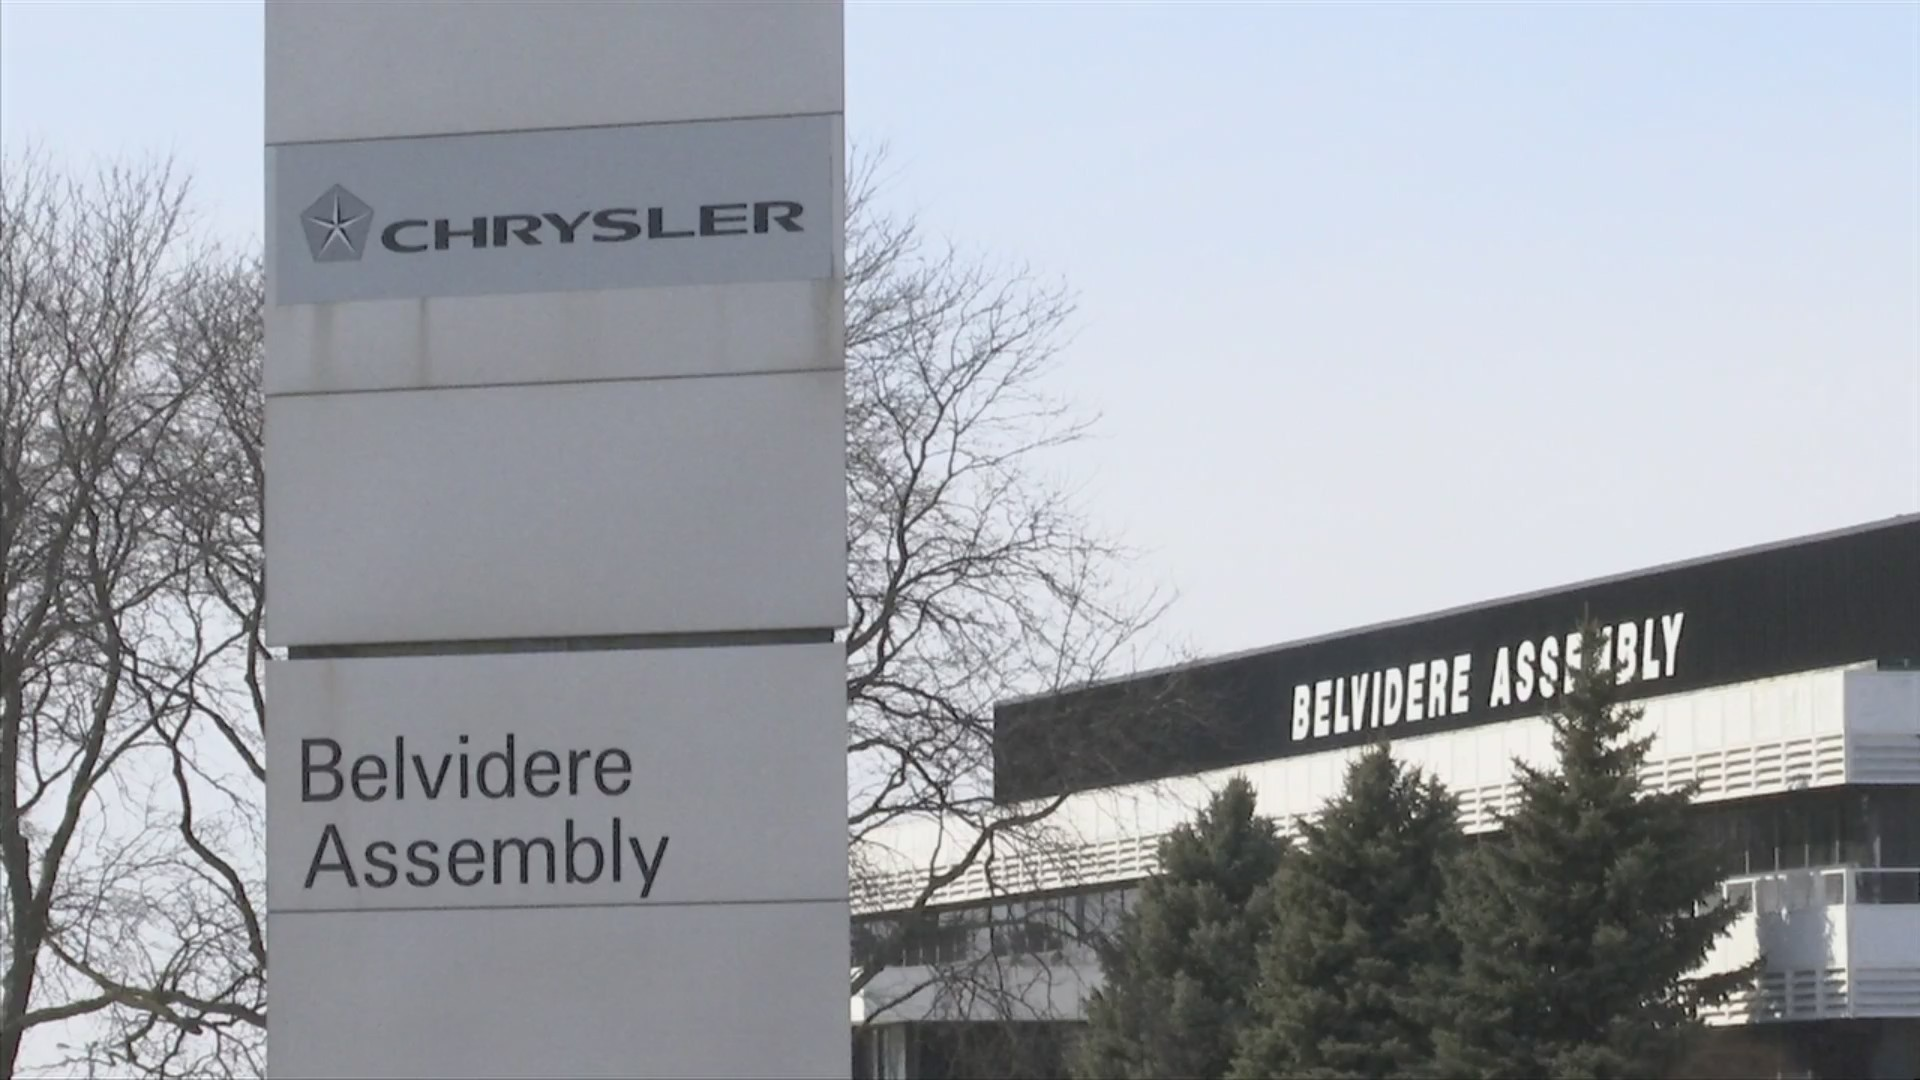 Report__Loss_of_Belvidere_Chrysler_jobs__0_20190306230558